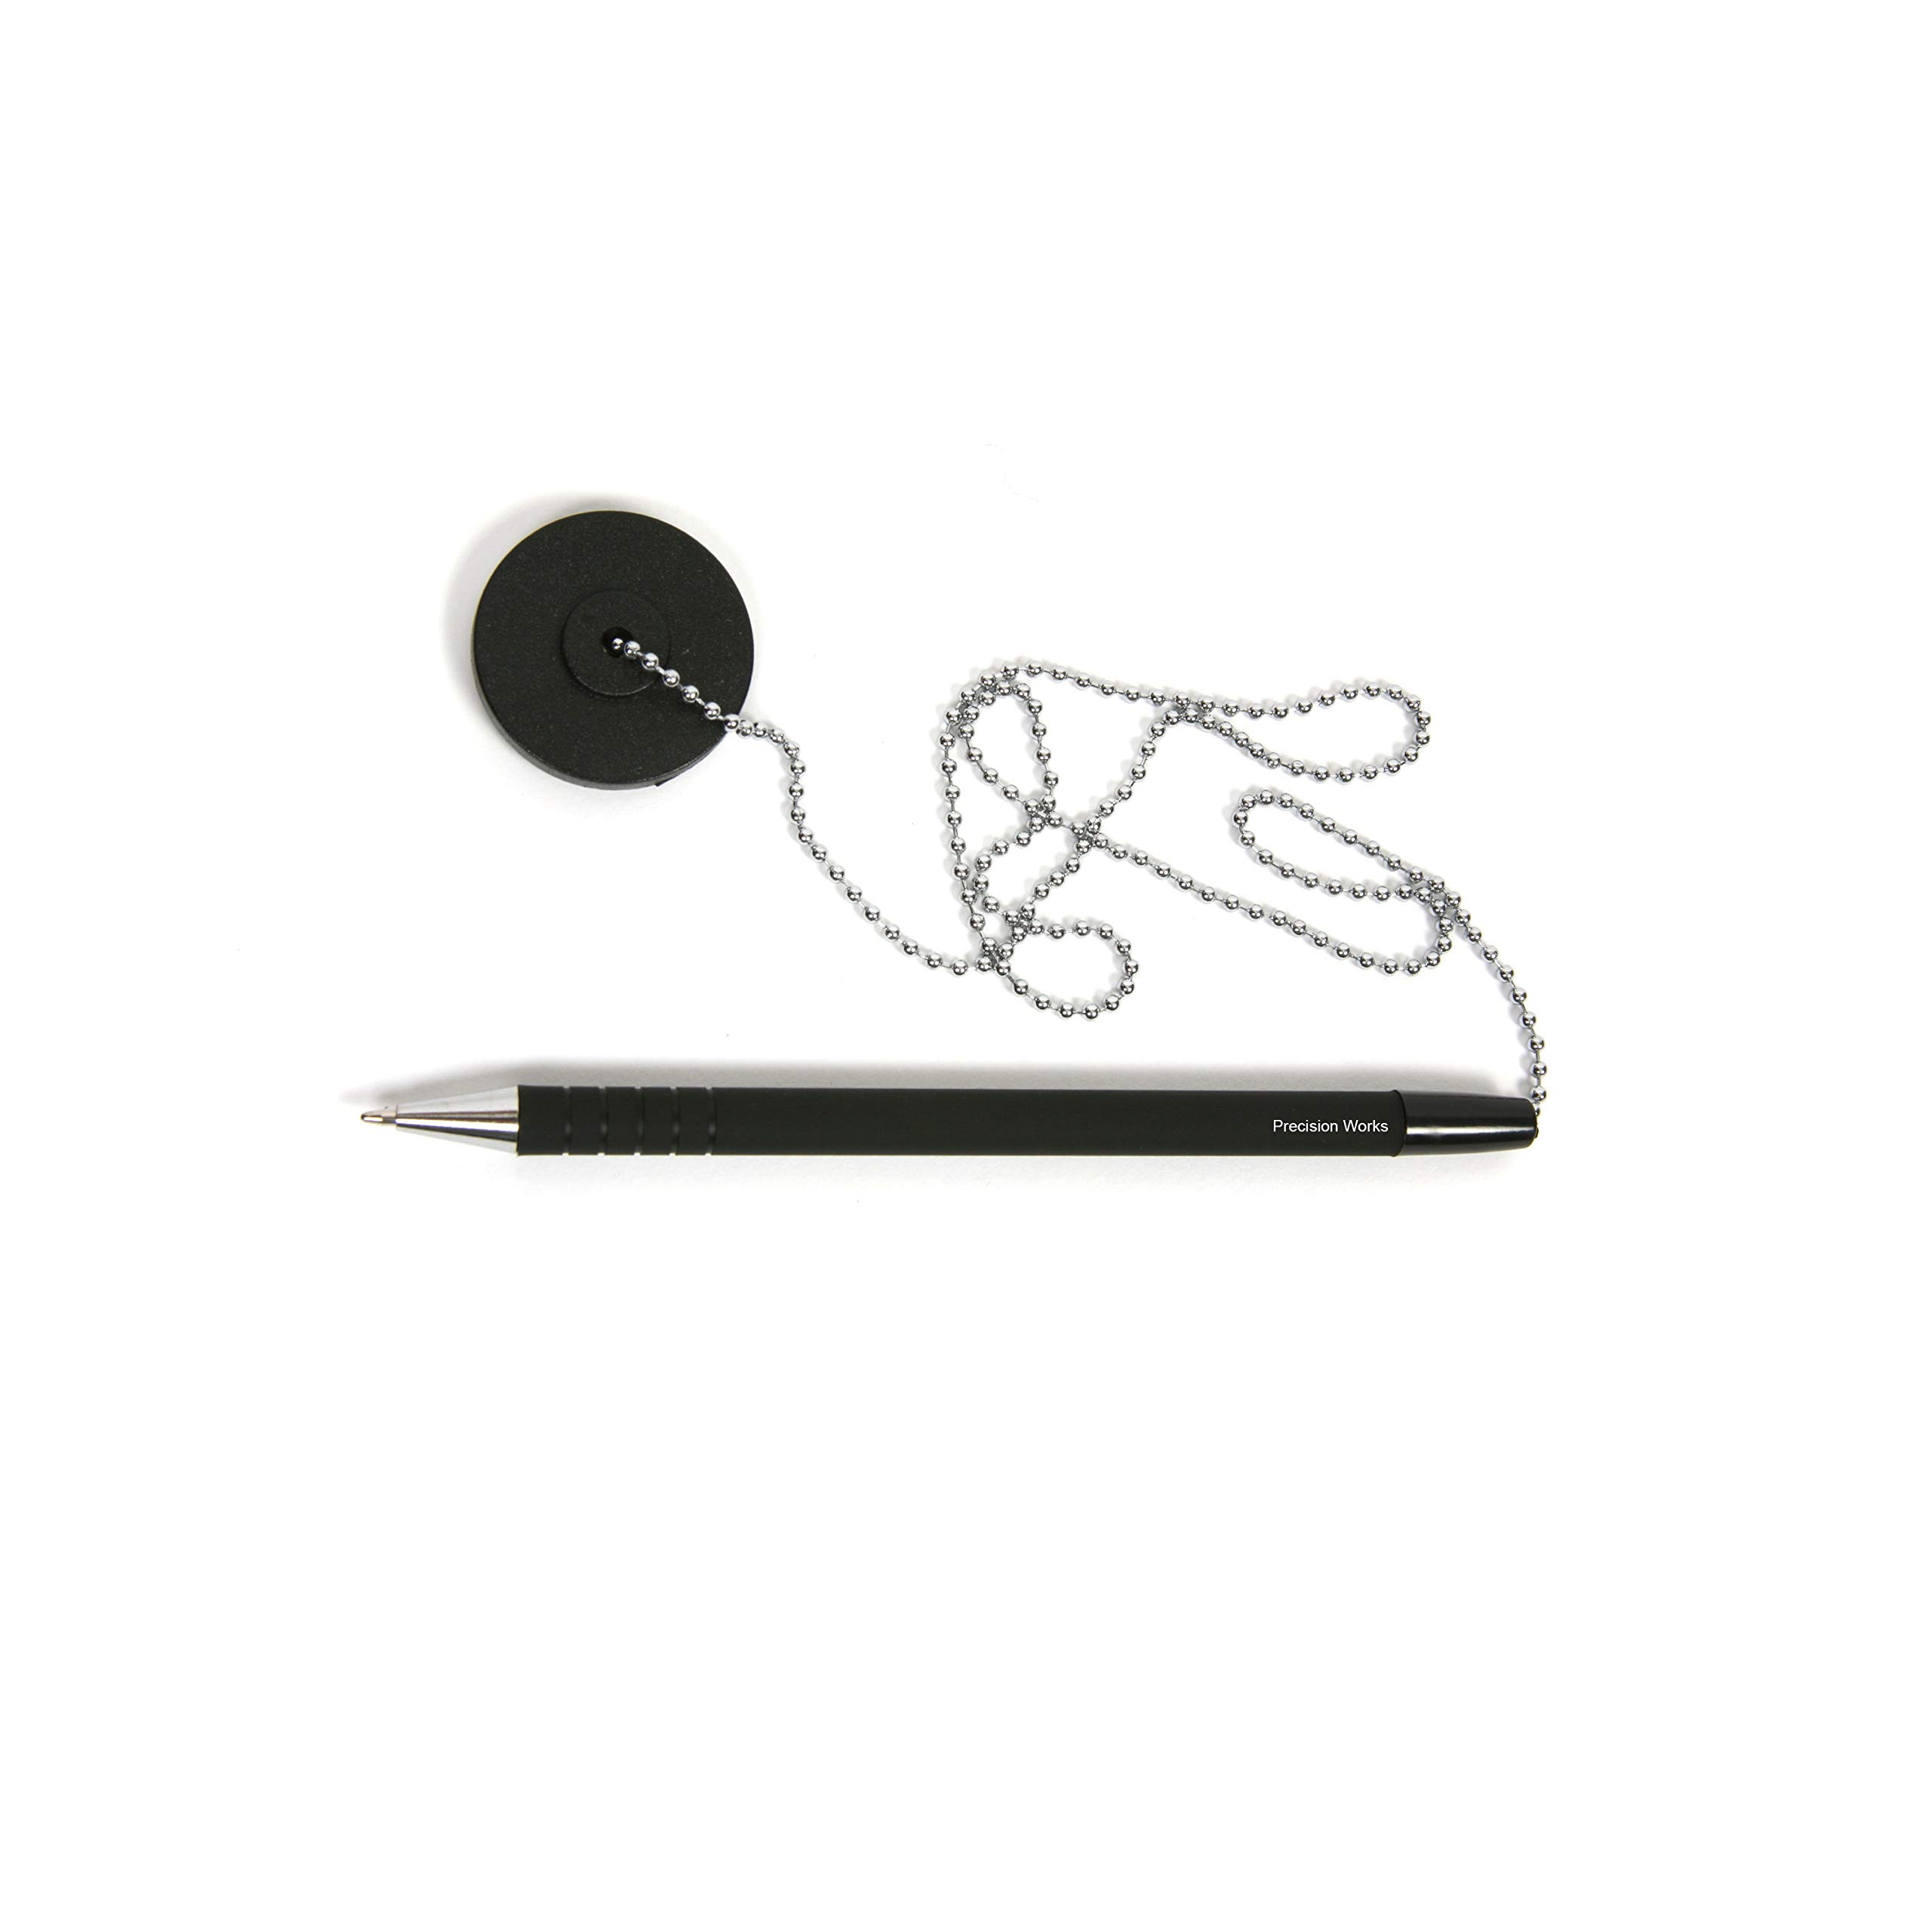 Secure Counter Pen With Adhesive Base & Metal Chain - Black Ink - Medium Point (12 Pack) by Precision Works (Image #3)